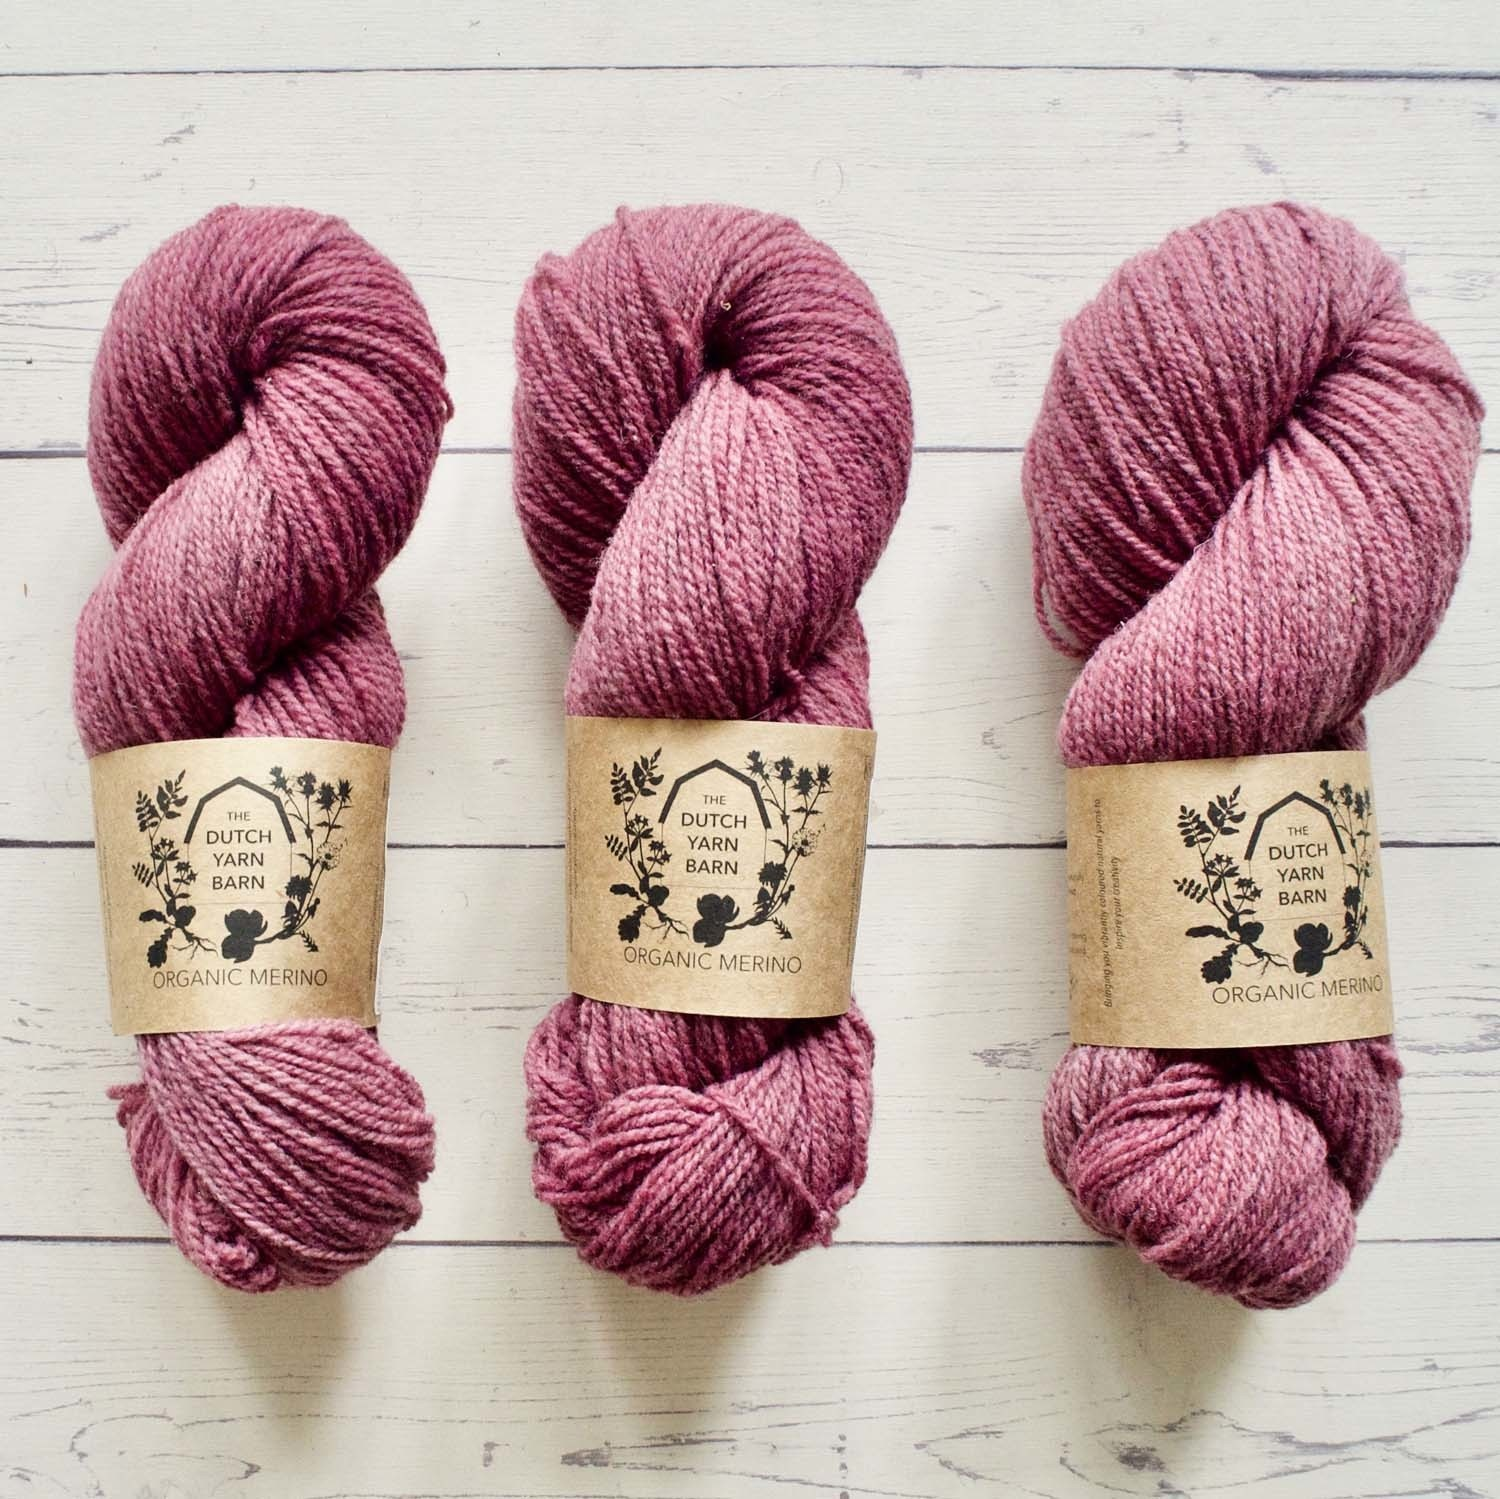 DUTCH YARN BARN ORGANIC MERINO - FUCHSIA